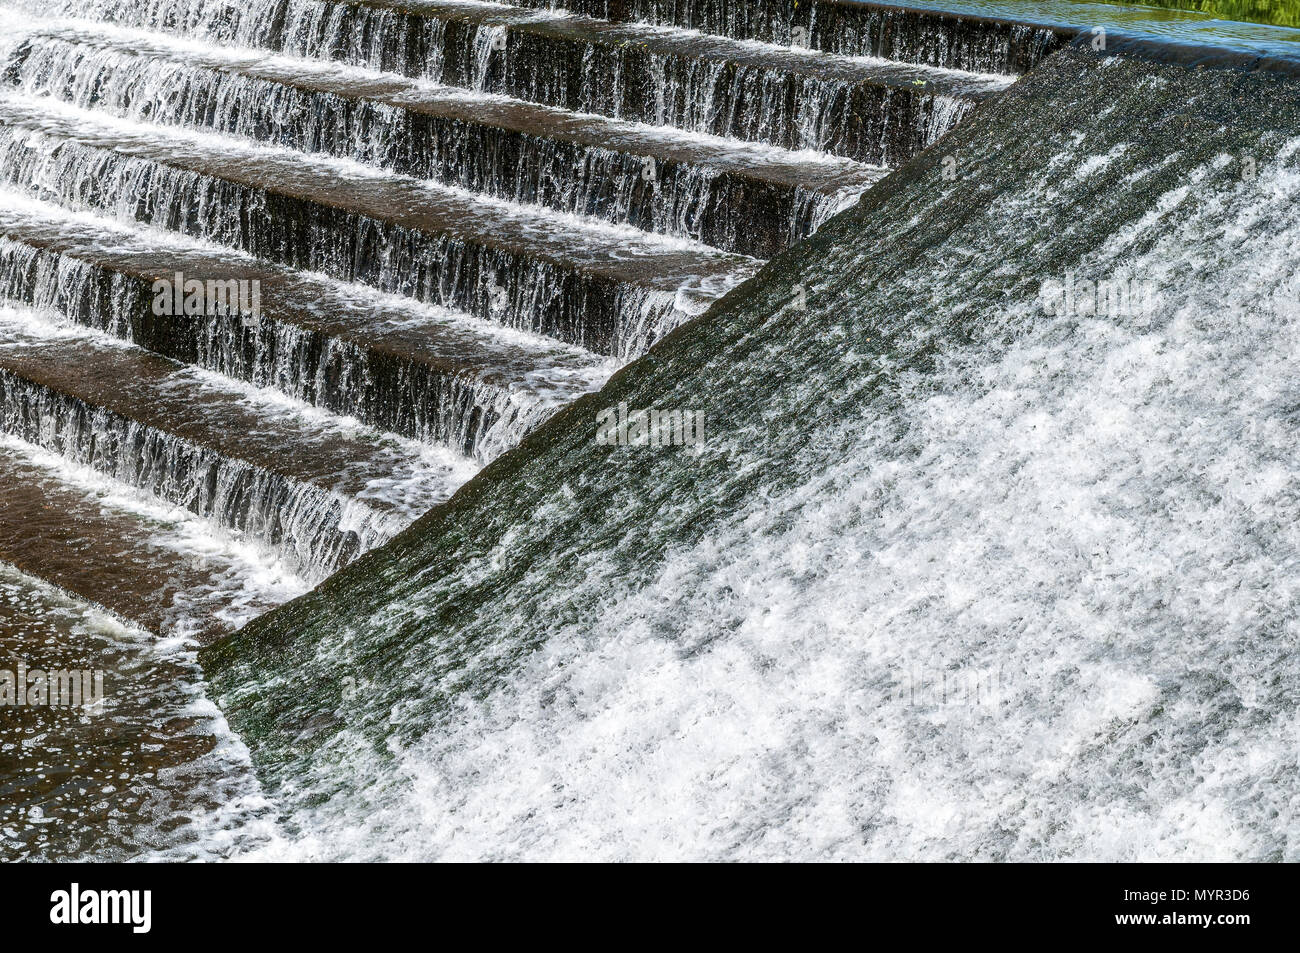 A wieir. Whitewater - Stock Image